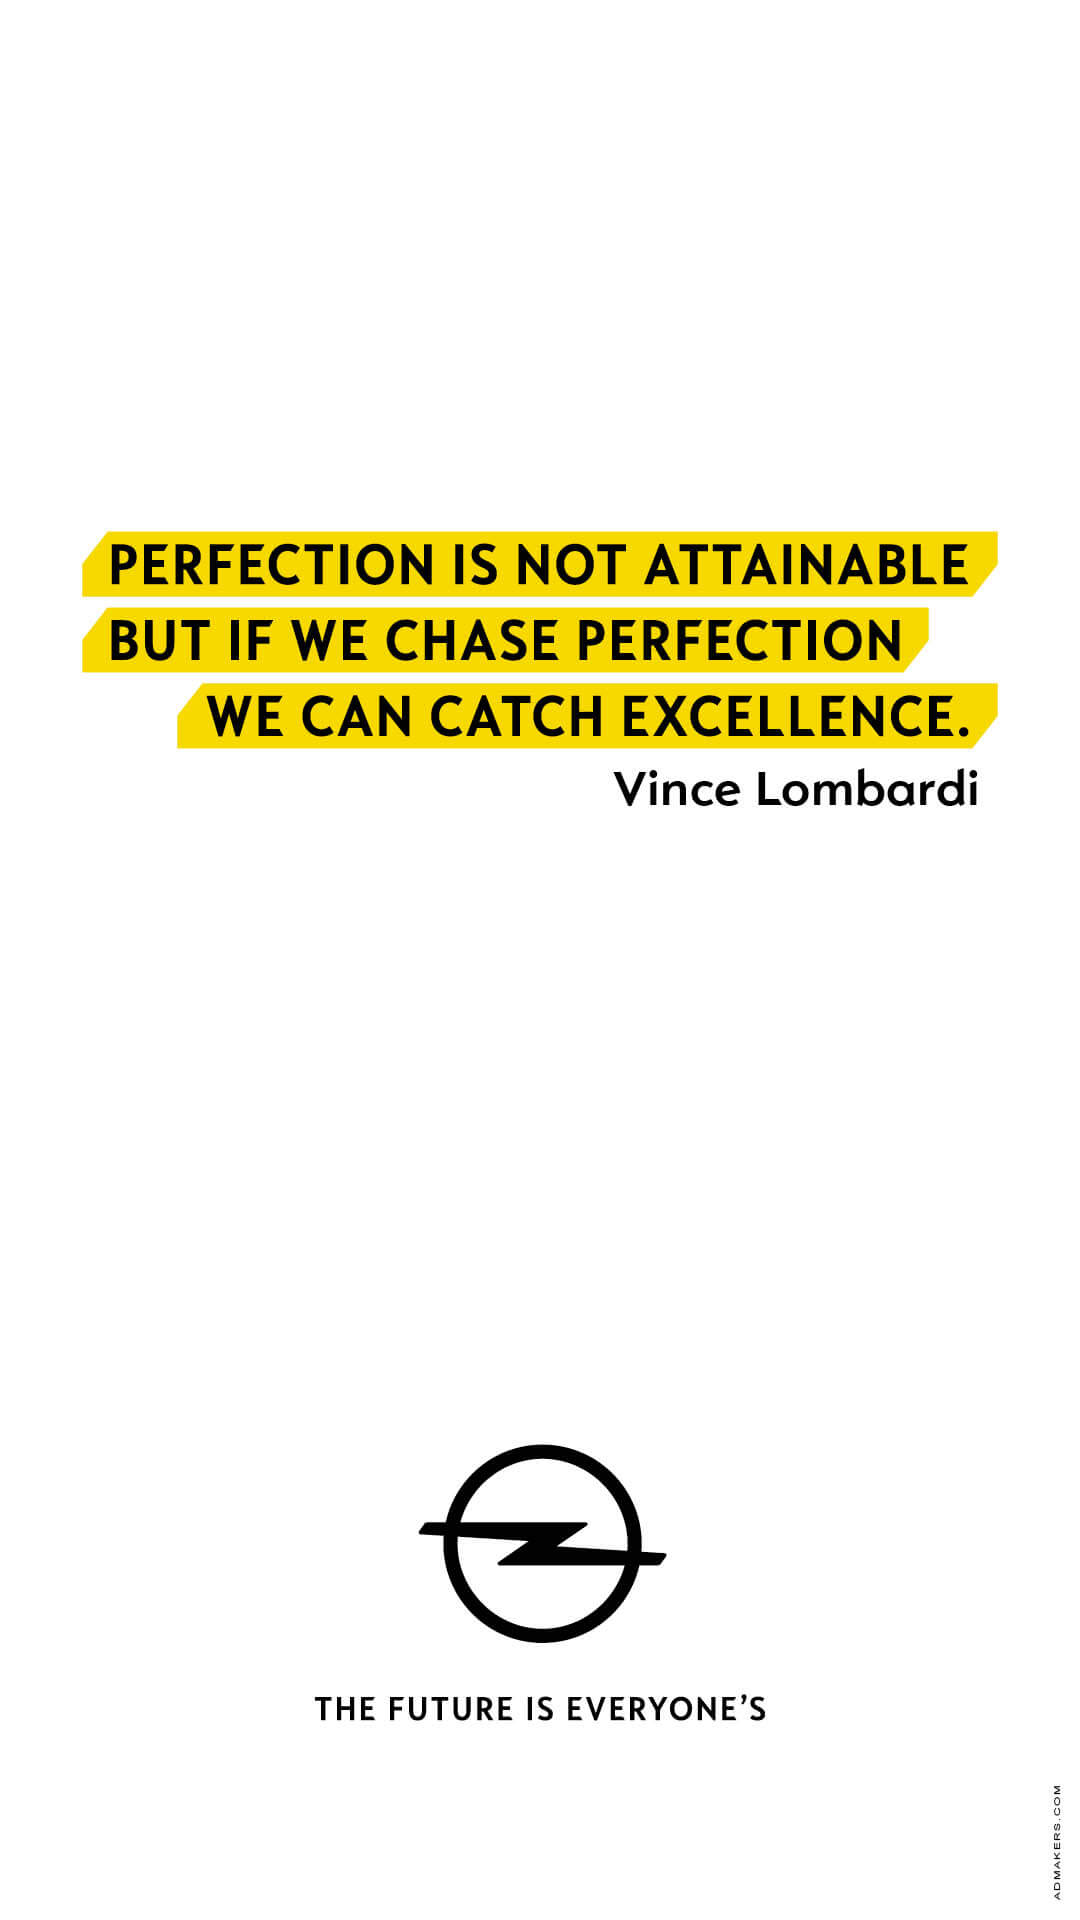 Perfection is not attainable but if we chase perfection we can catch excellence.